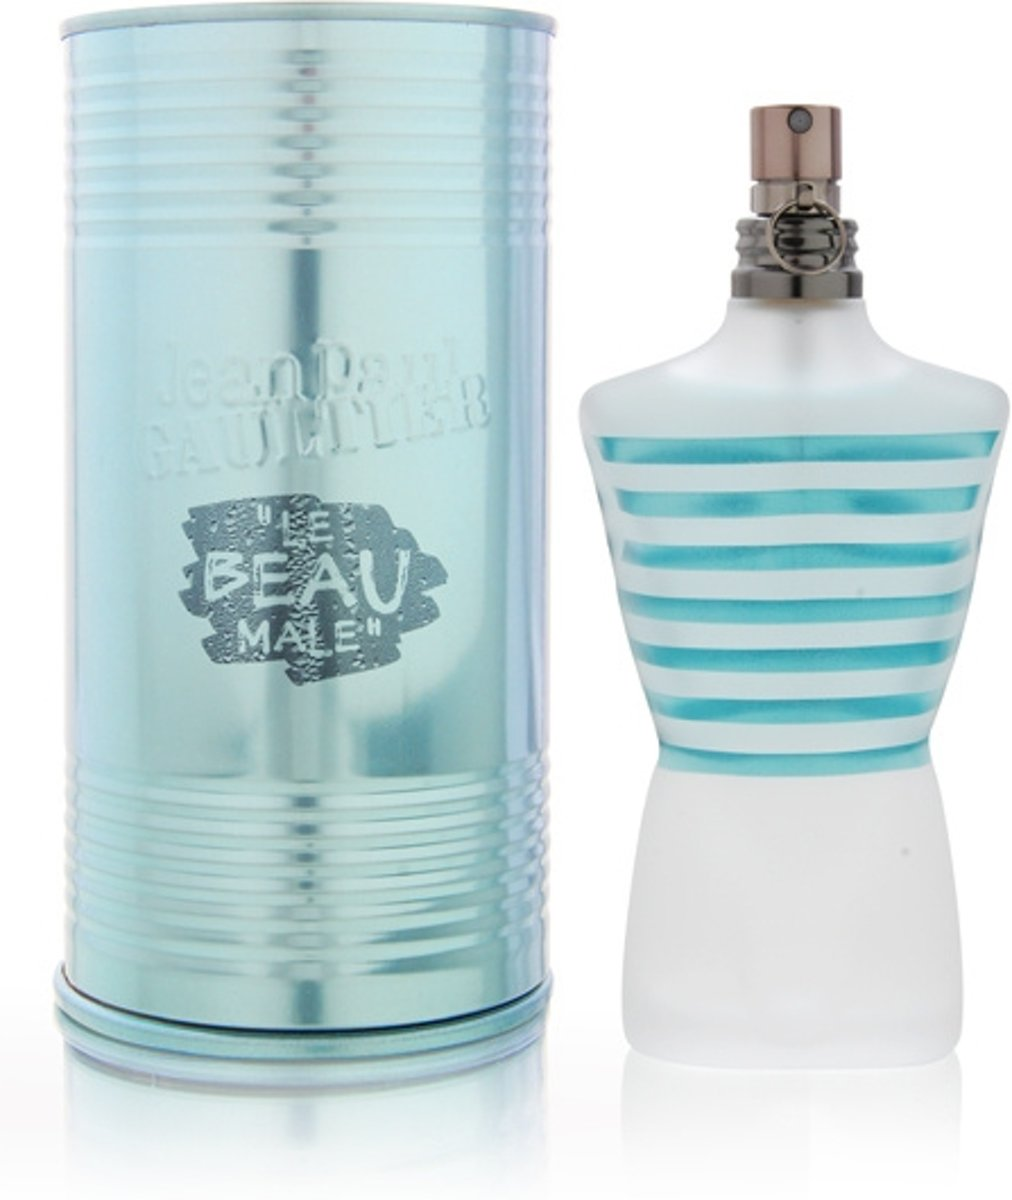 Jean Paul Gaultier - Eau de toilette - Le Beau Male - 125 ml